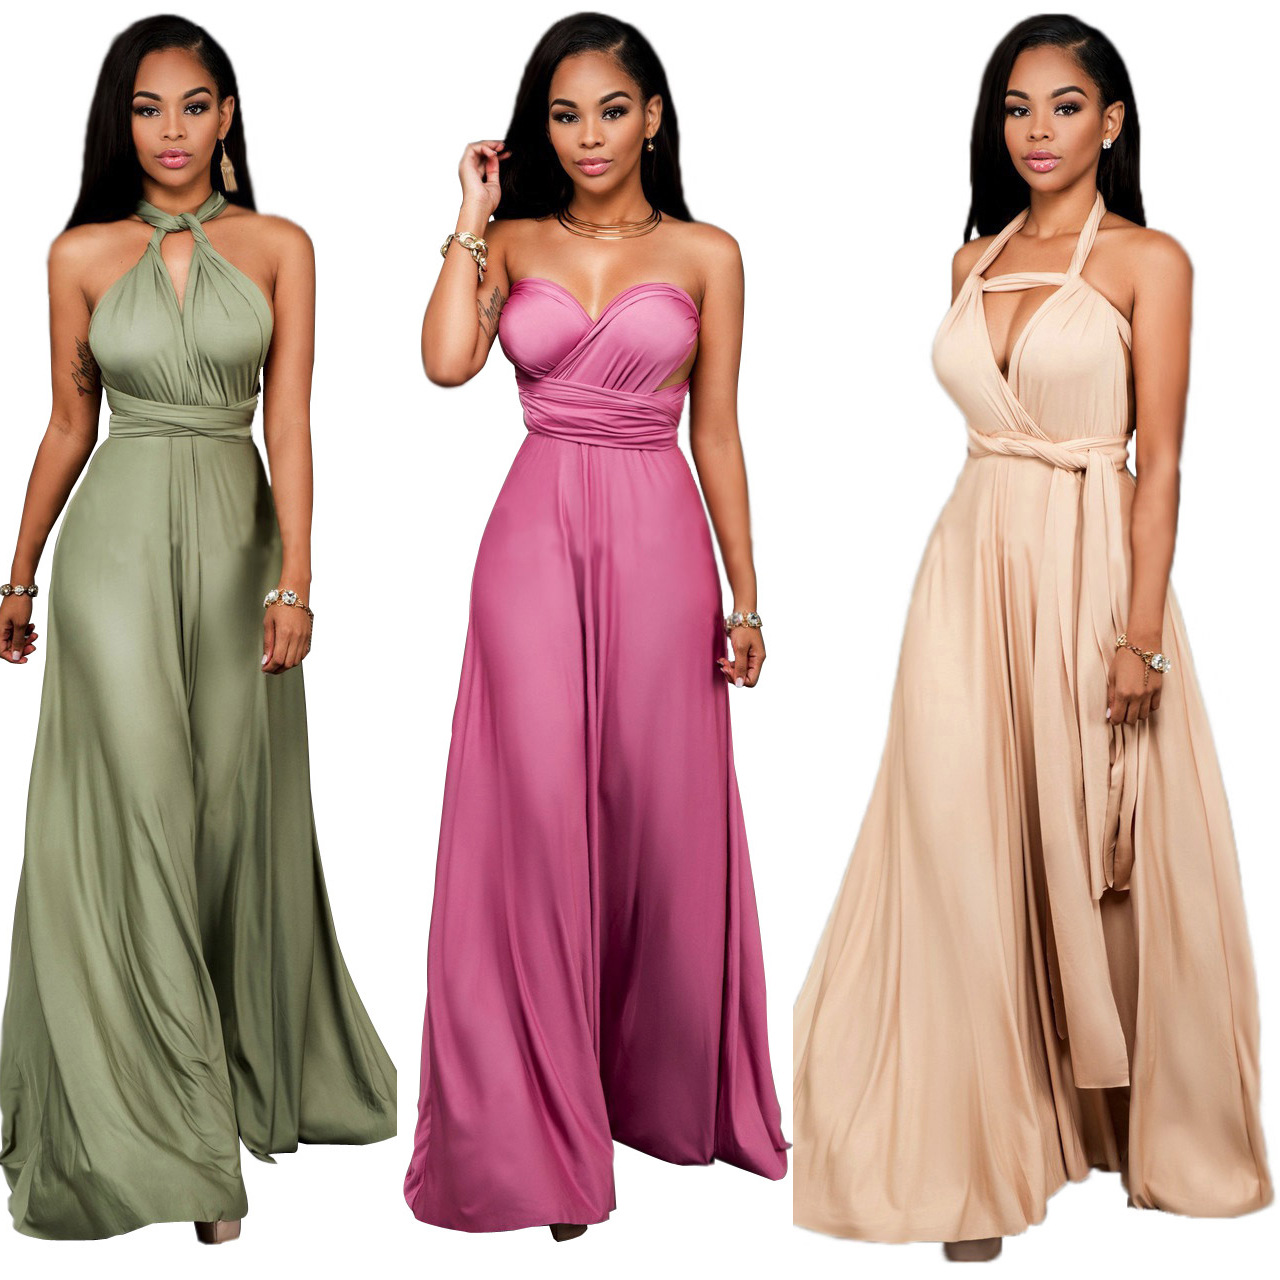 US $28.98 |Women evening long dress elegant Formal Maxi dress Multi Way  Wrap Convertible Infinity dresses Strapless Plus Size Vintage Dress-in  Dresses ...